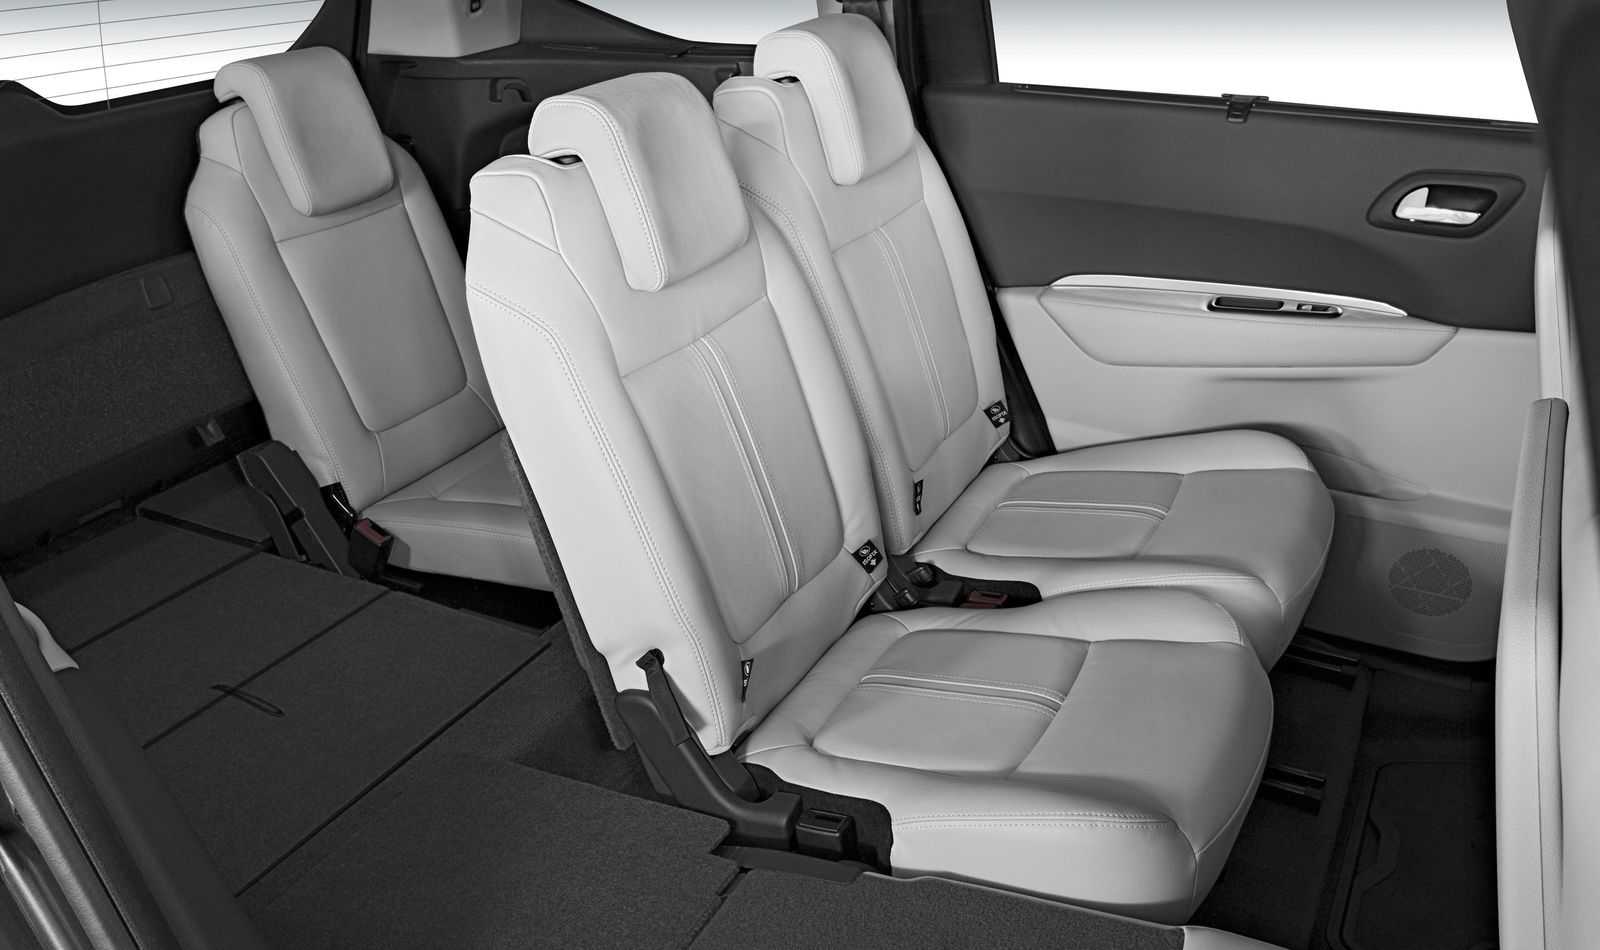 peugeot 5008 sizes and dimensions guide | carwow